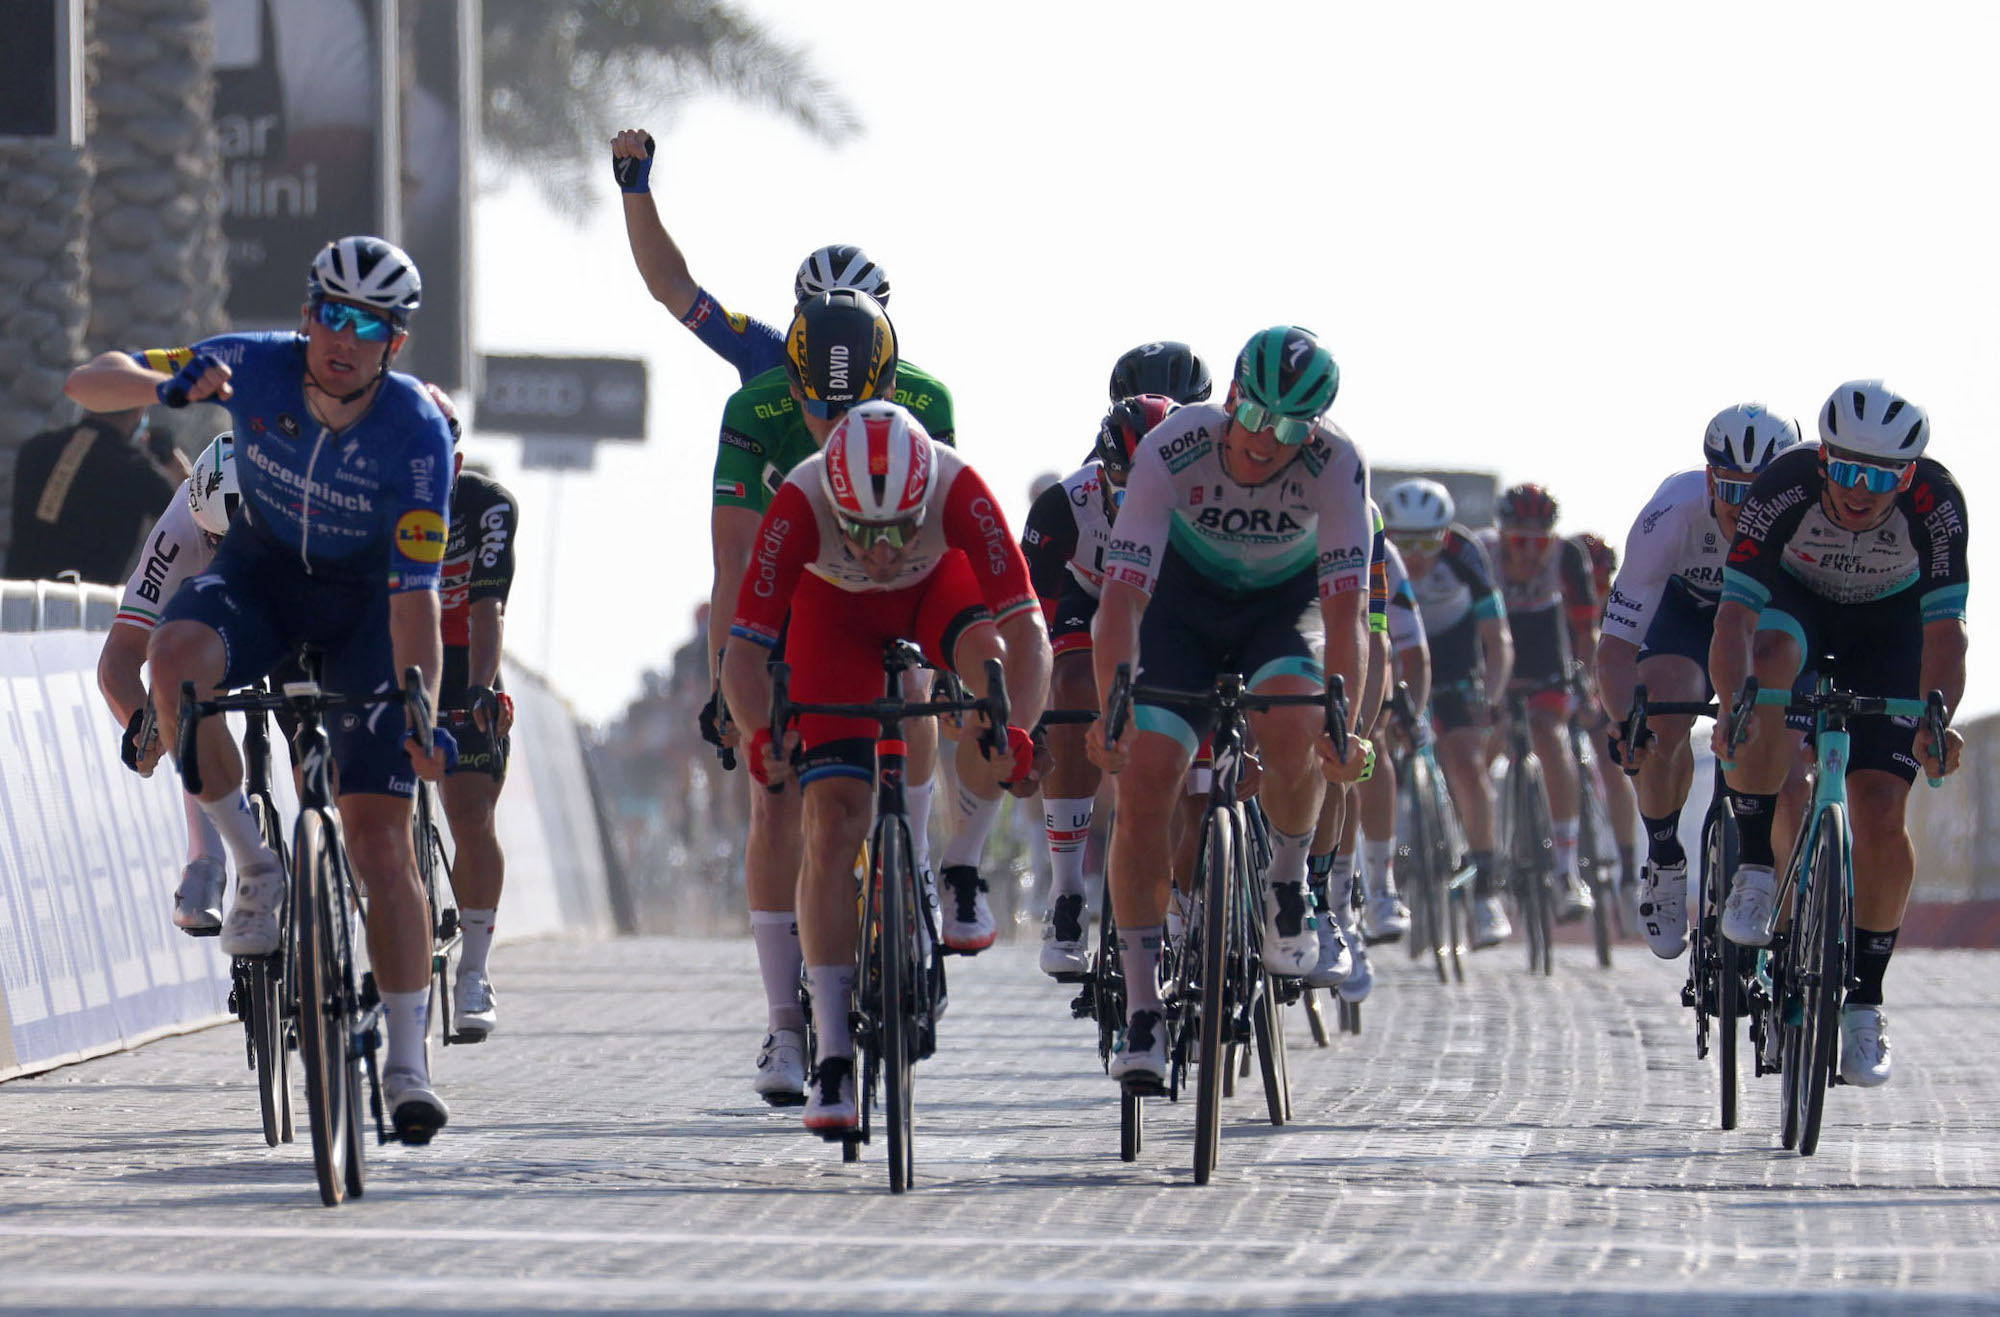 Sam Bennett takes his second win in messy sprint finish on stage six of the UAE Tour 2021